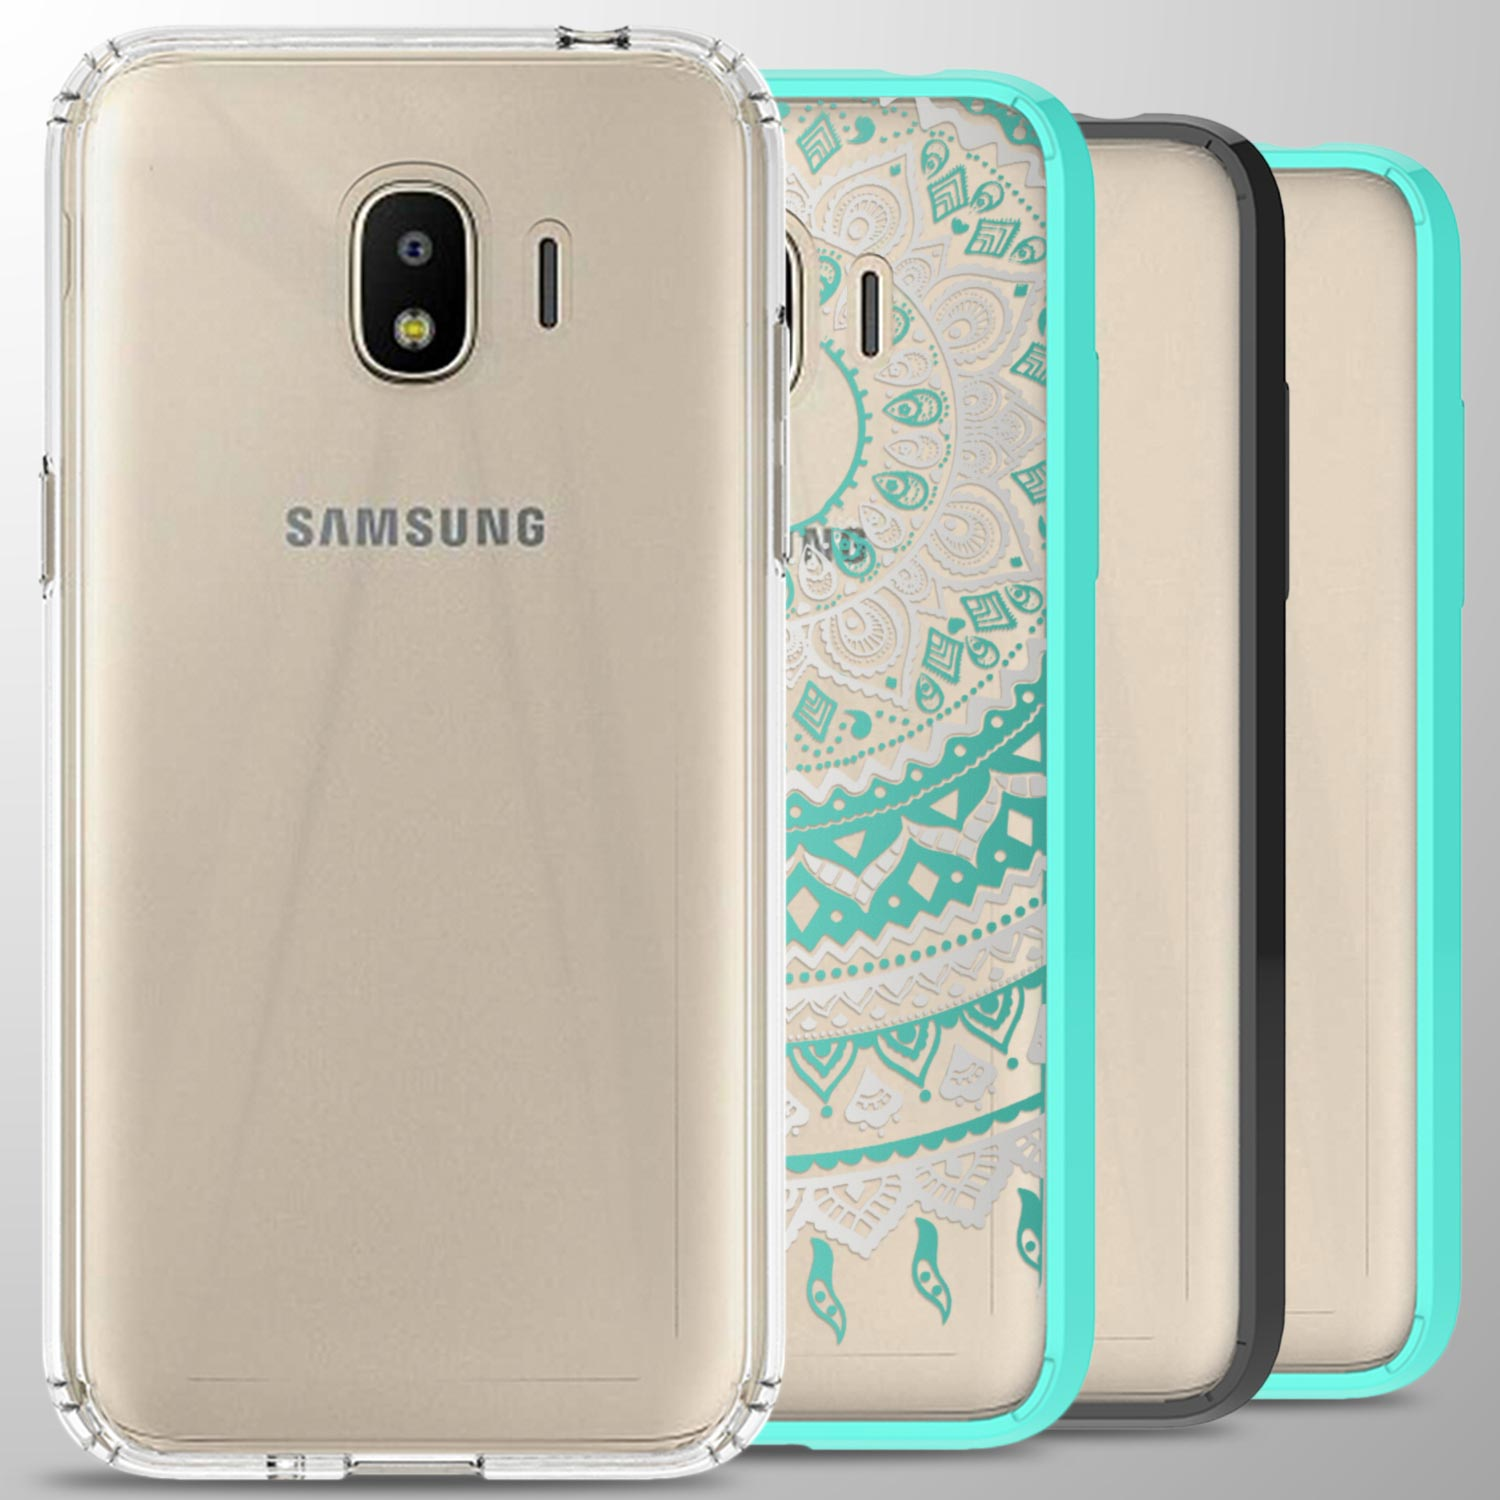 sneakers for cheap 7cc1b 86bf2 For Samsung Galaxy J2 Pro 2018 / Grand Prime Pro 2018 Case Hard Slim ...